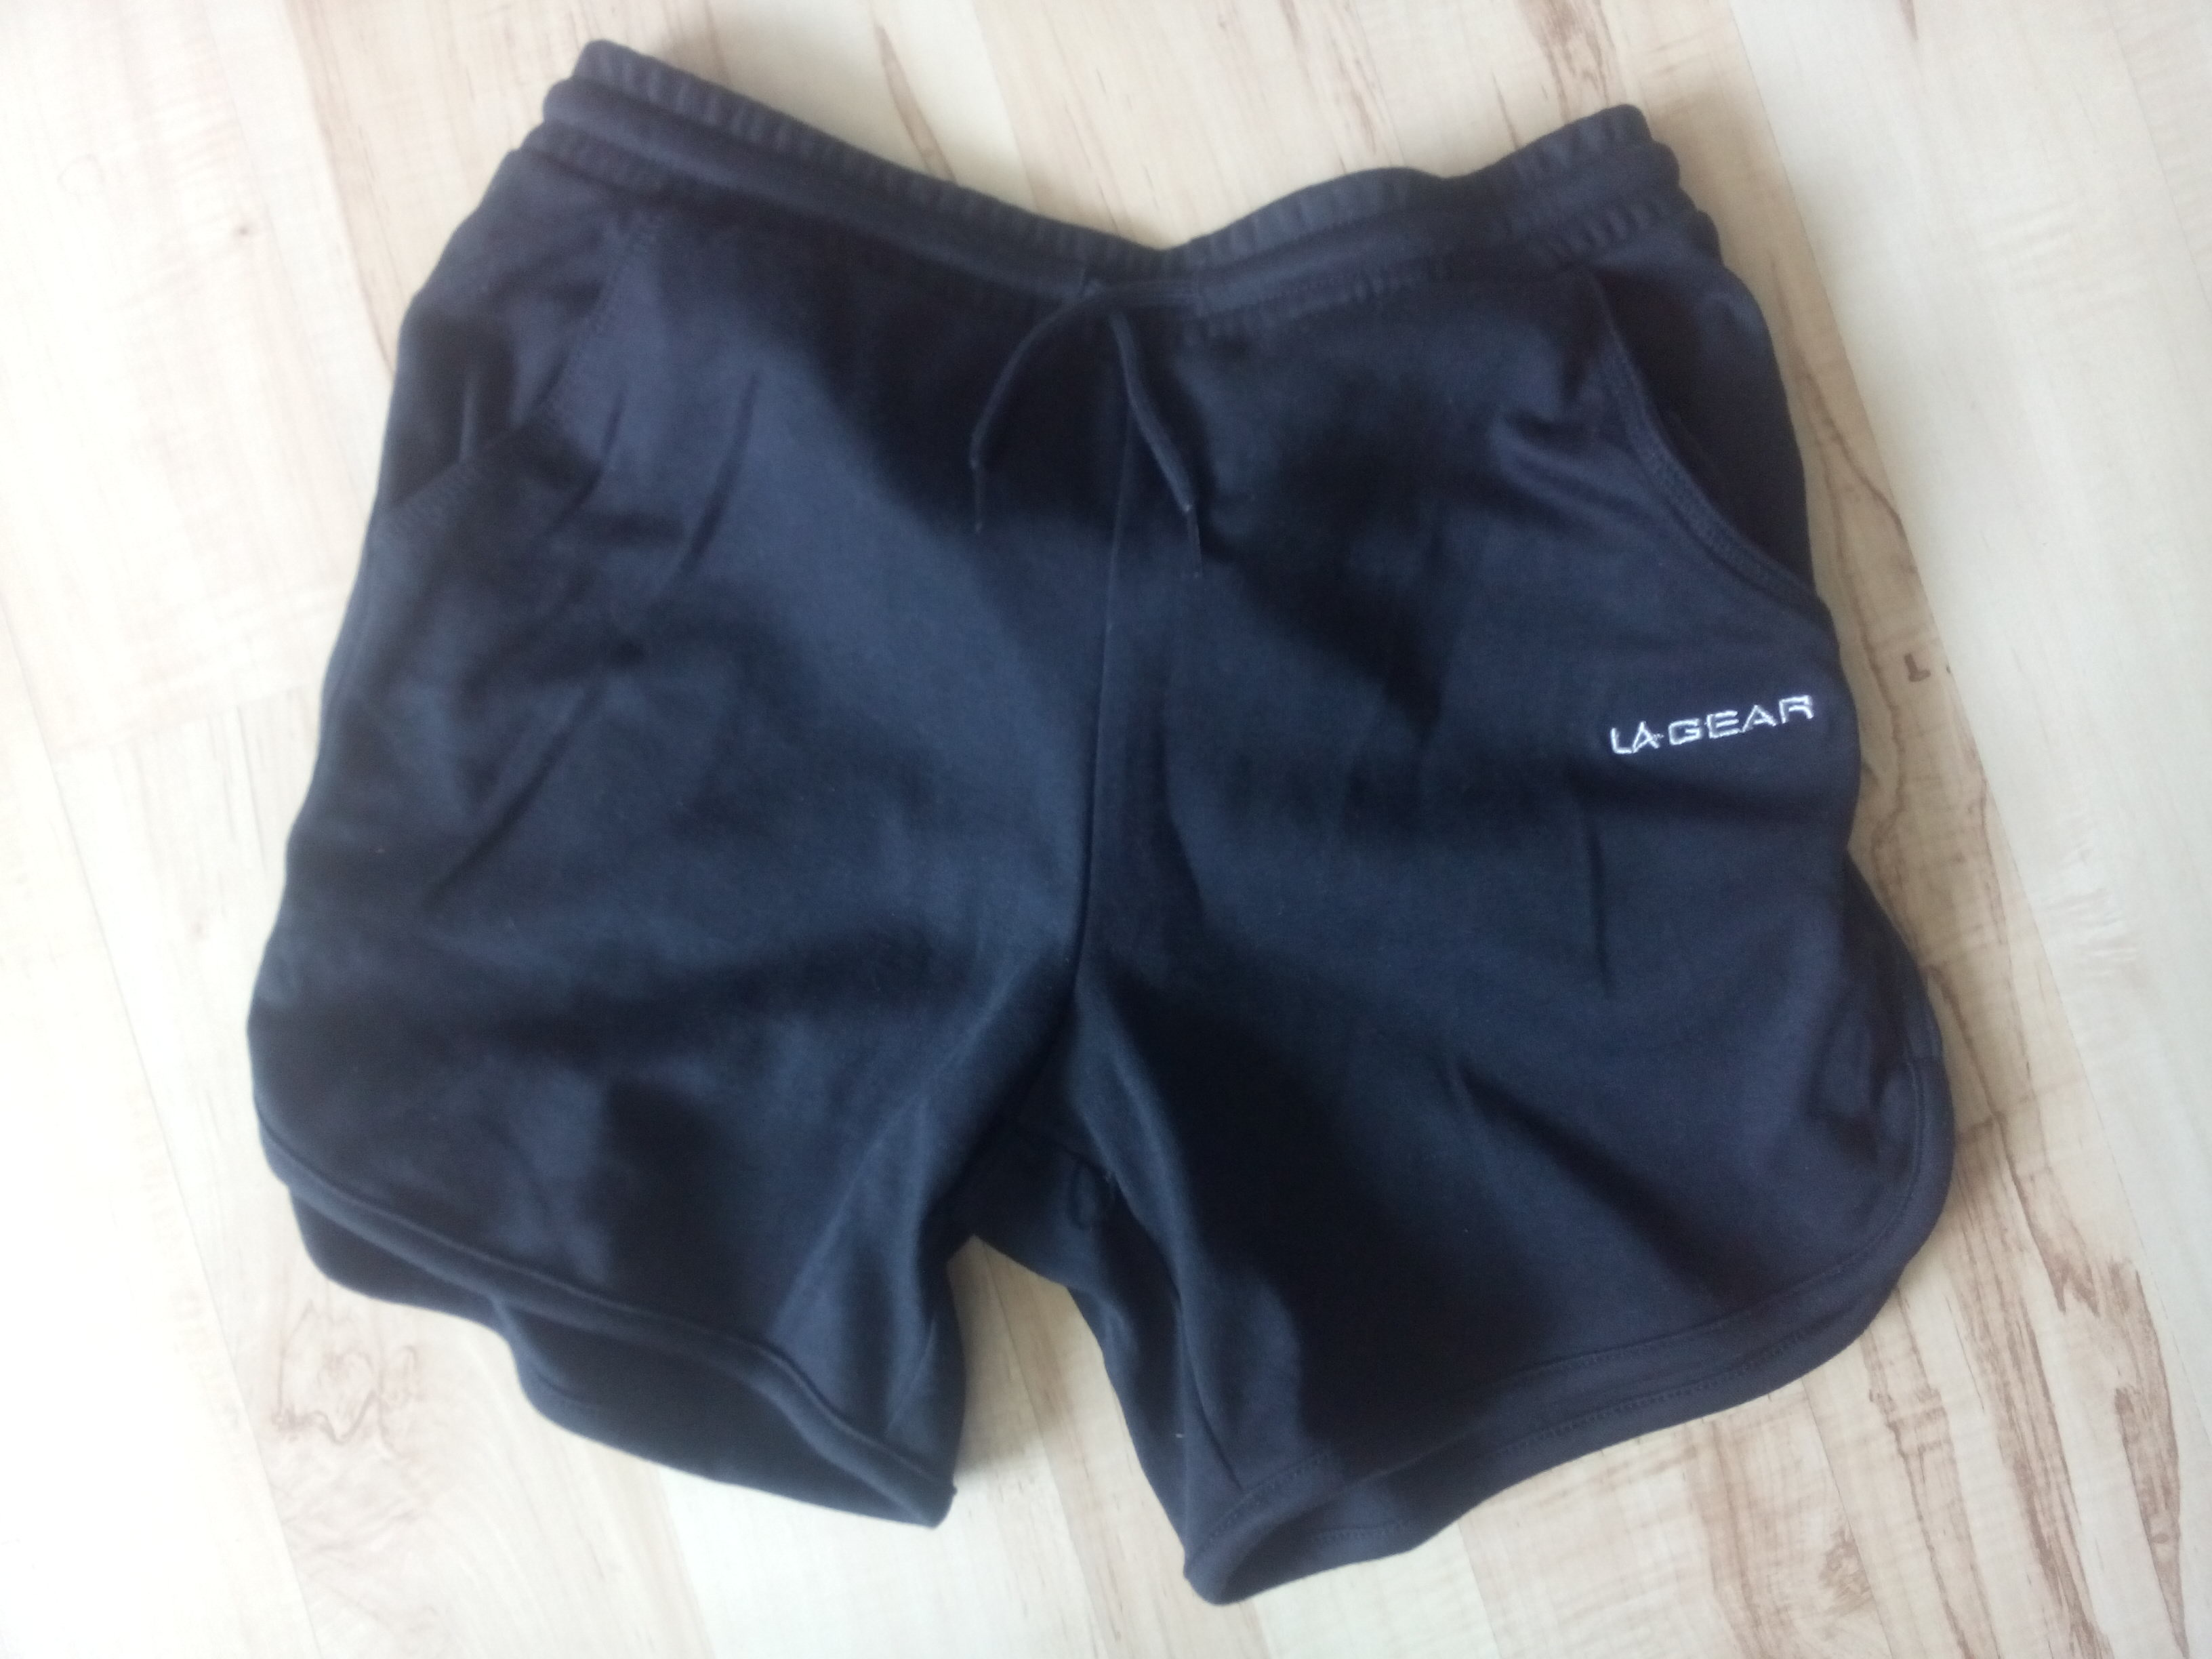 A pair of soft black shorts